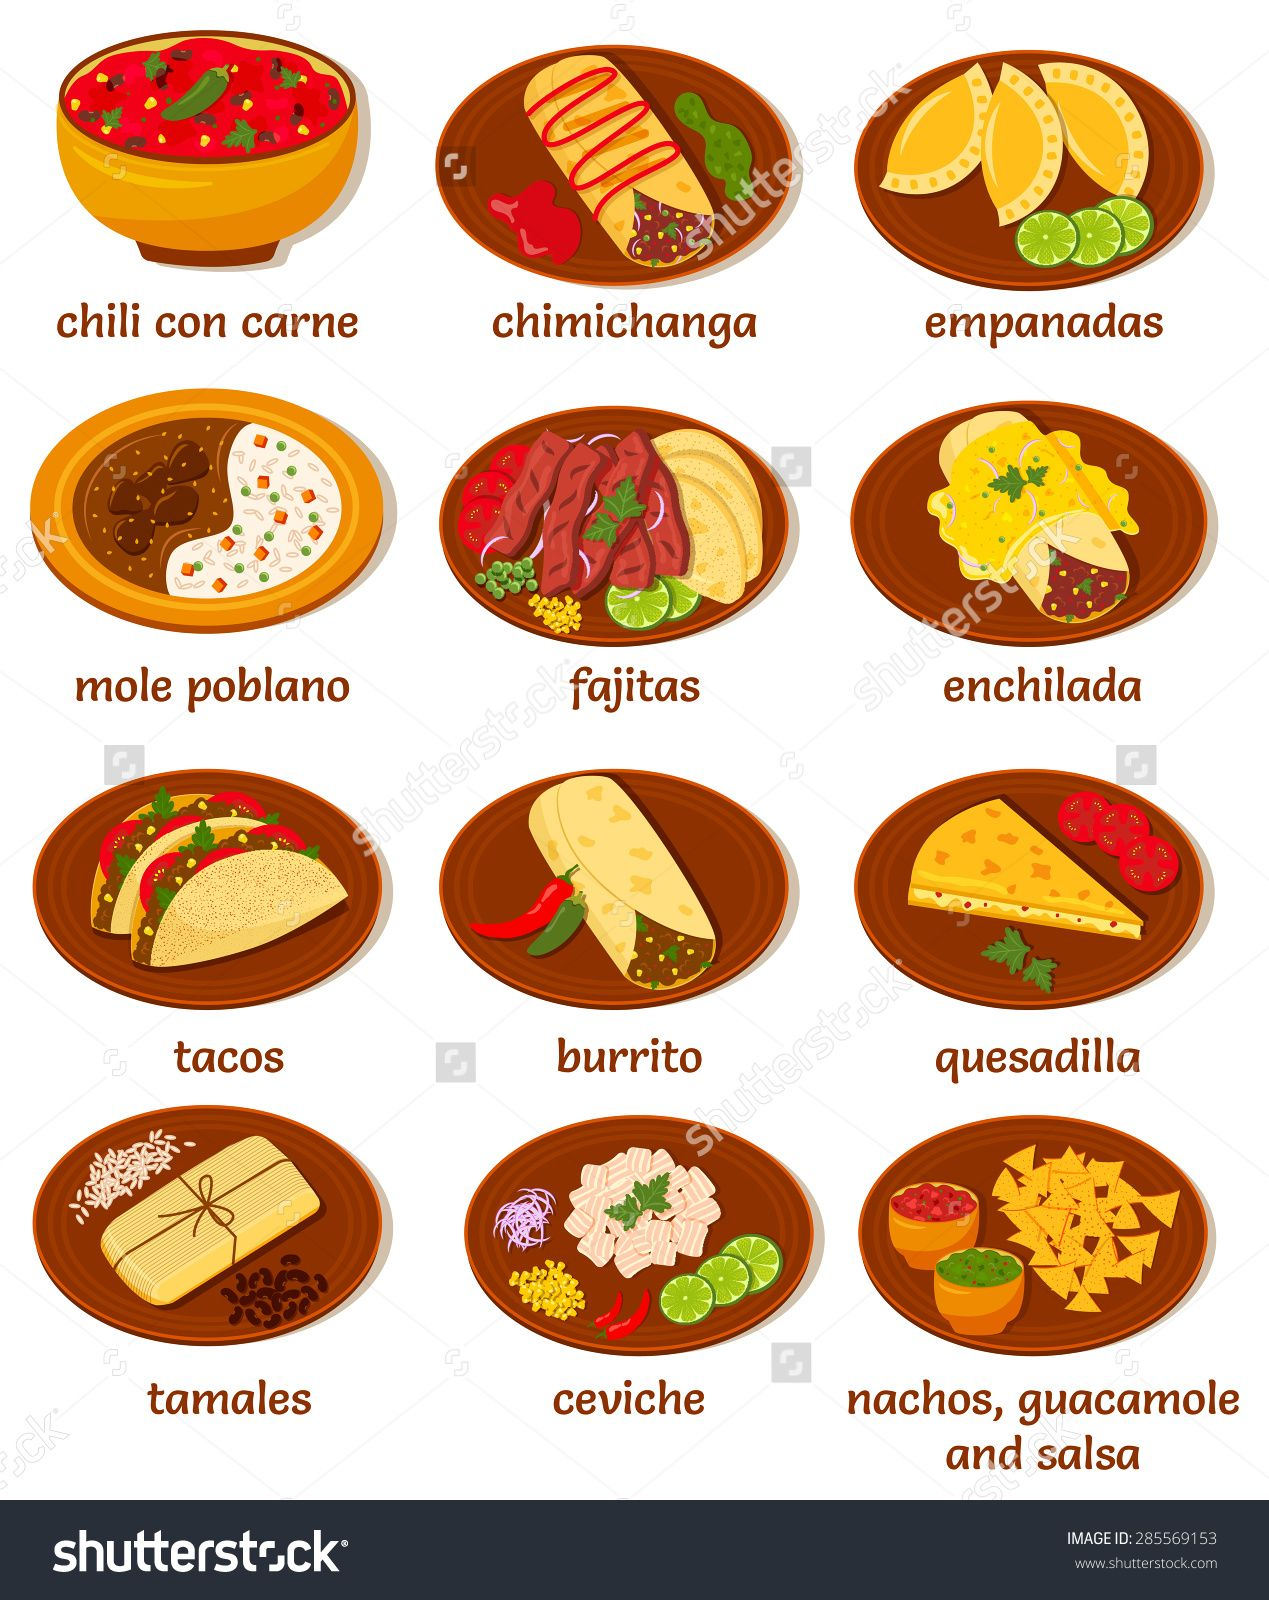 mexican food at a glance | kitchen tips | pinterest | mexicans and food